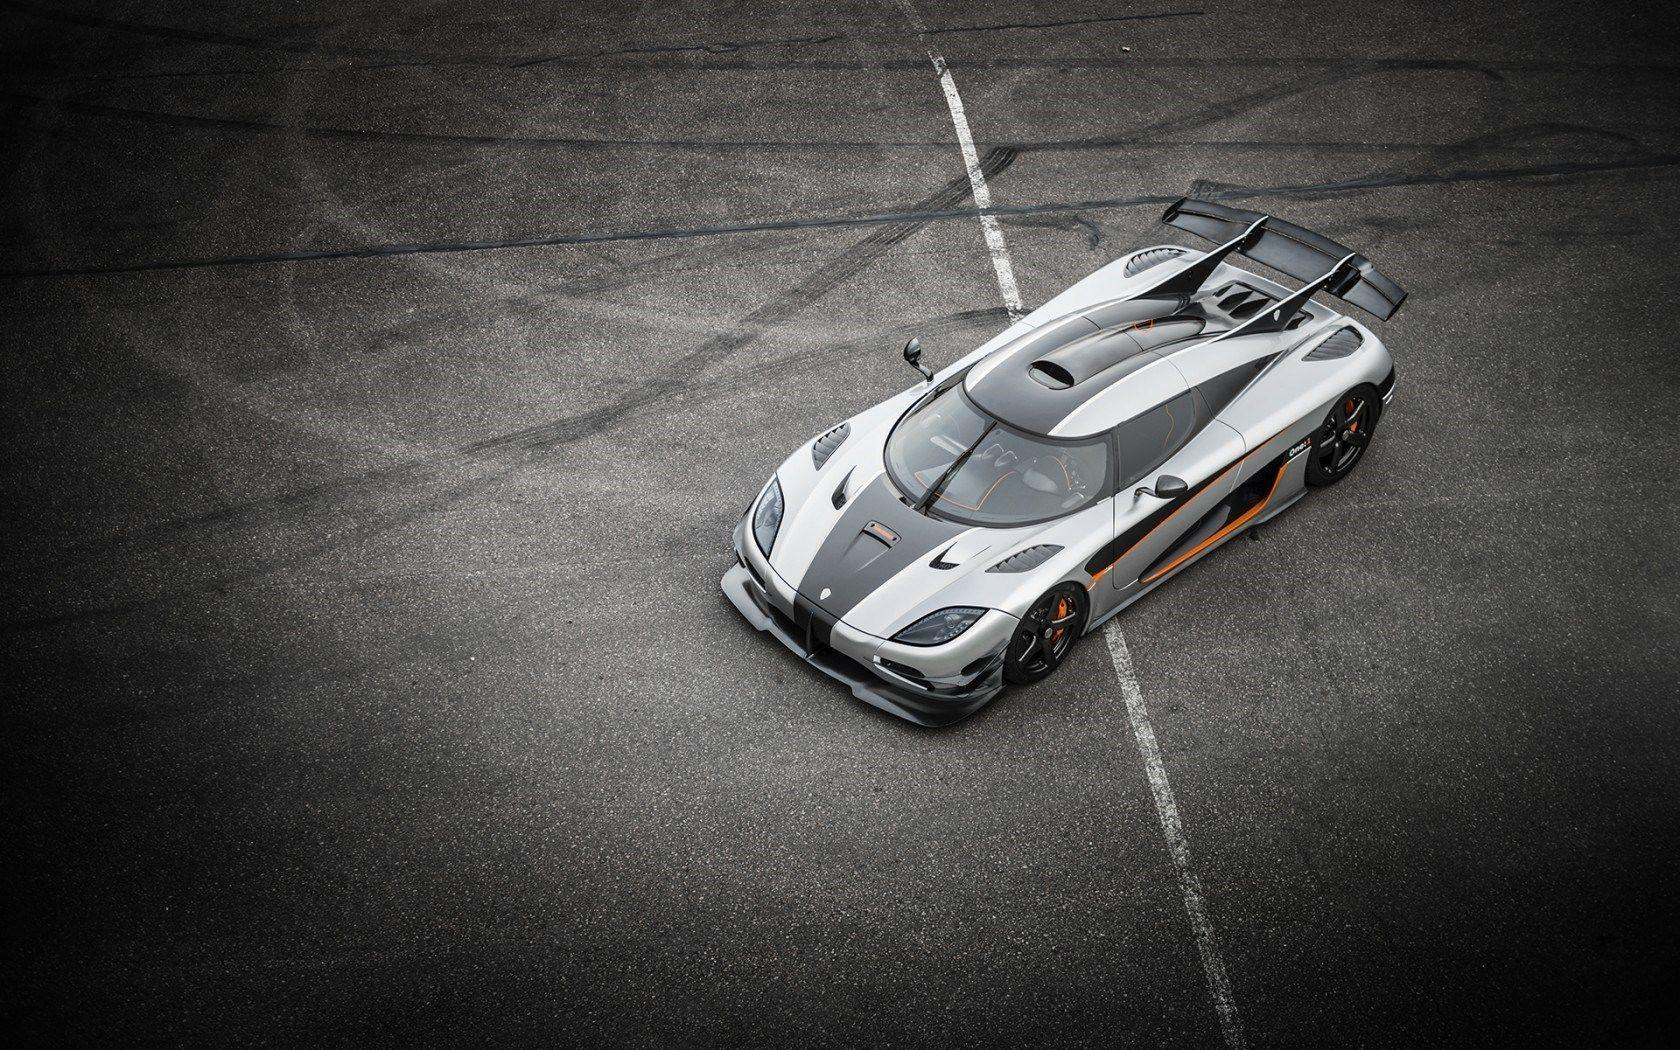 free koenigsegg agera one 1 wallpapers hd : Tracksbrewpubbrampton